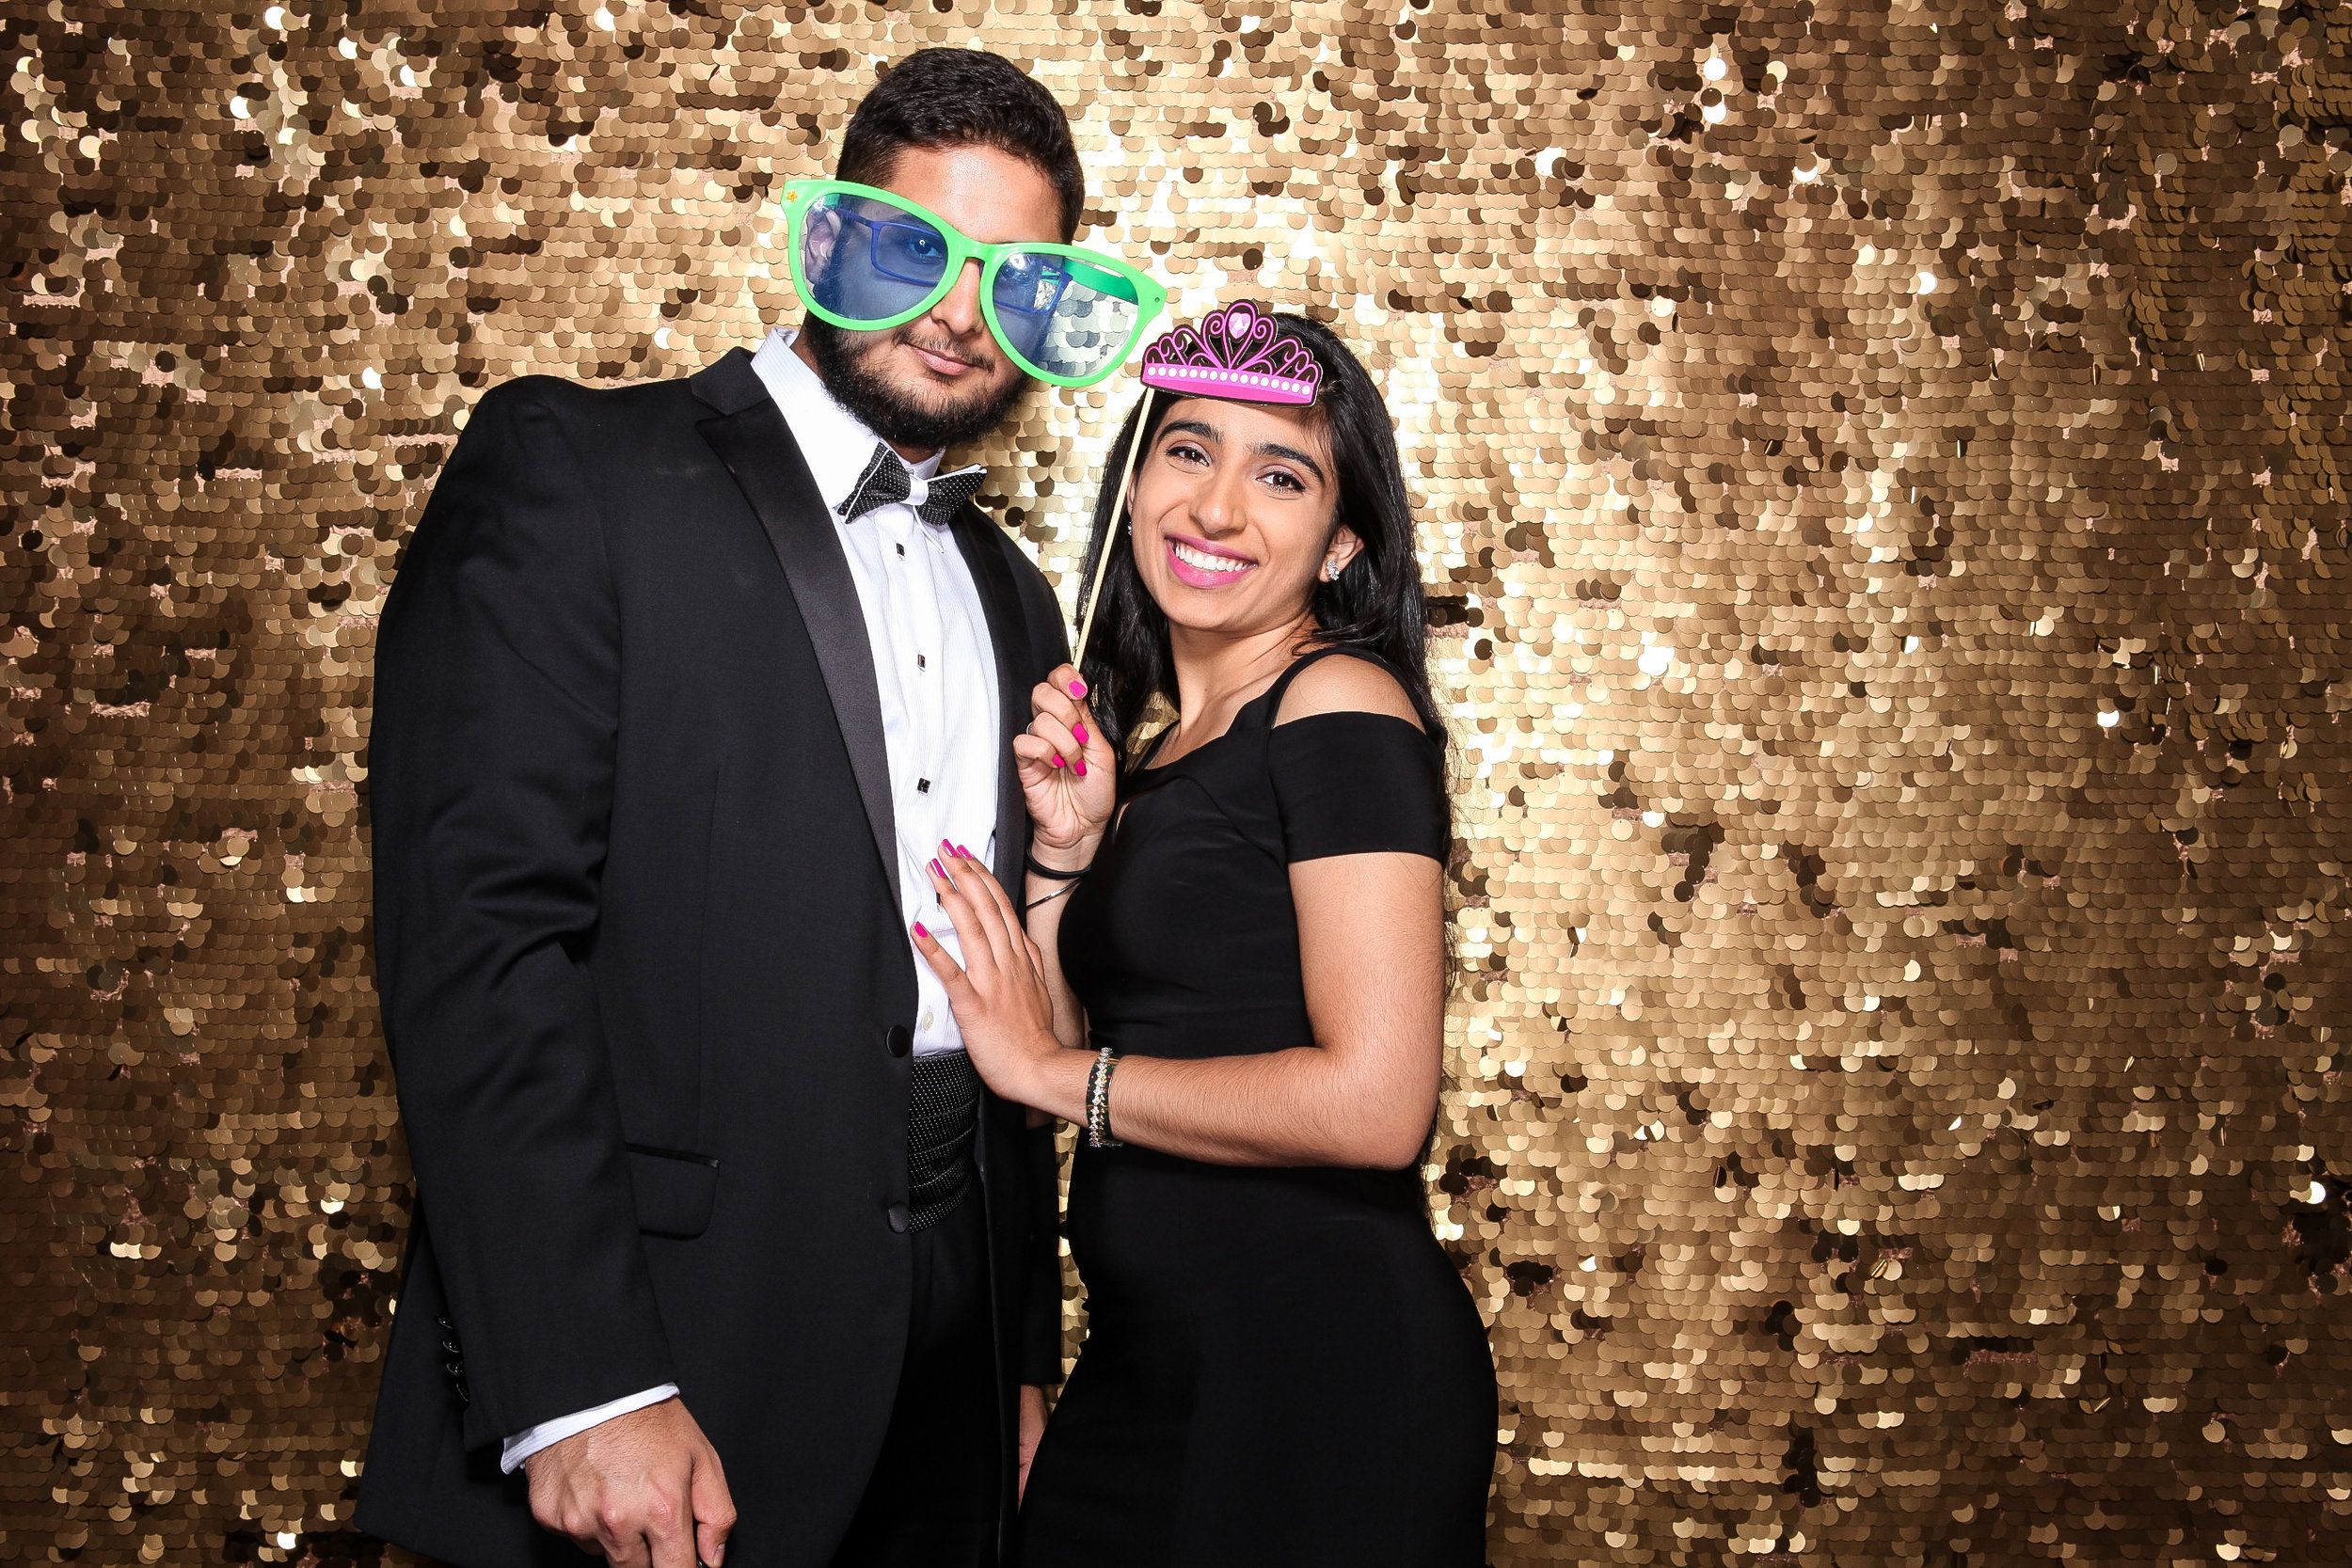 20190503_Adelphi_Senior_Formal-042.jpg